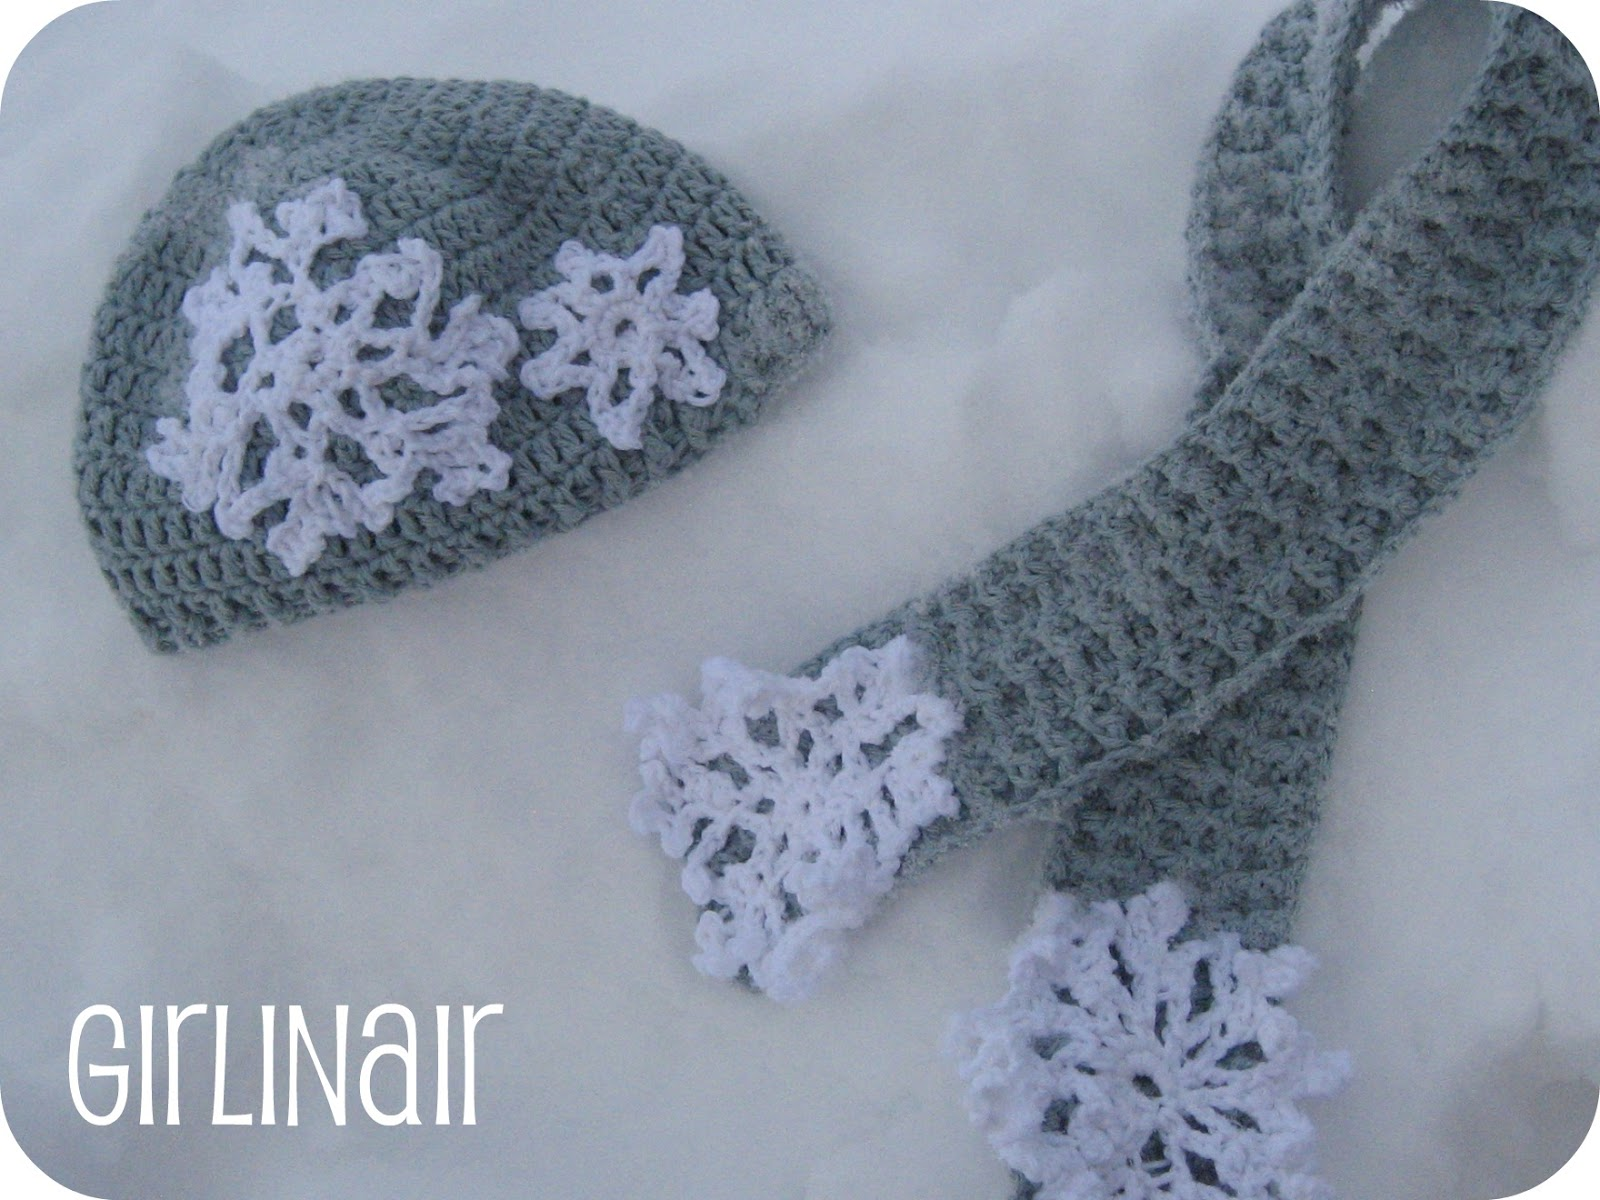 Crochet Patterns For Scarf And Hat : Girl in Air BLOG: Snowflake Hat and Scarf FREE Pattern and ...